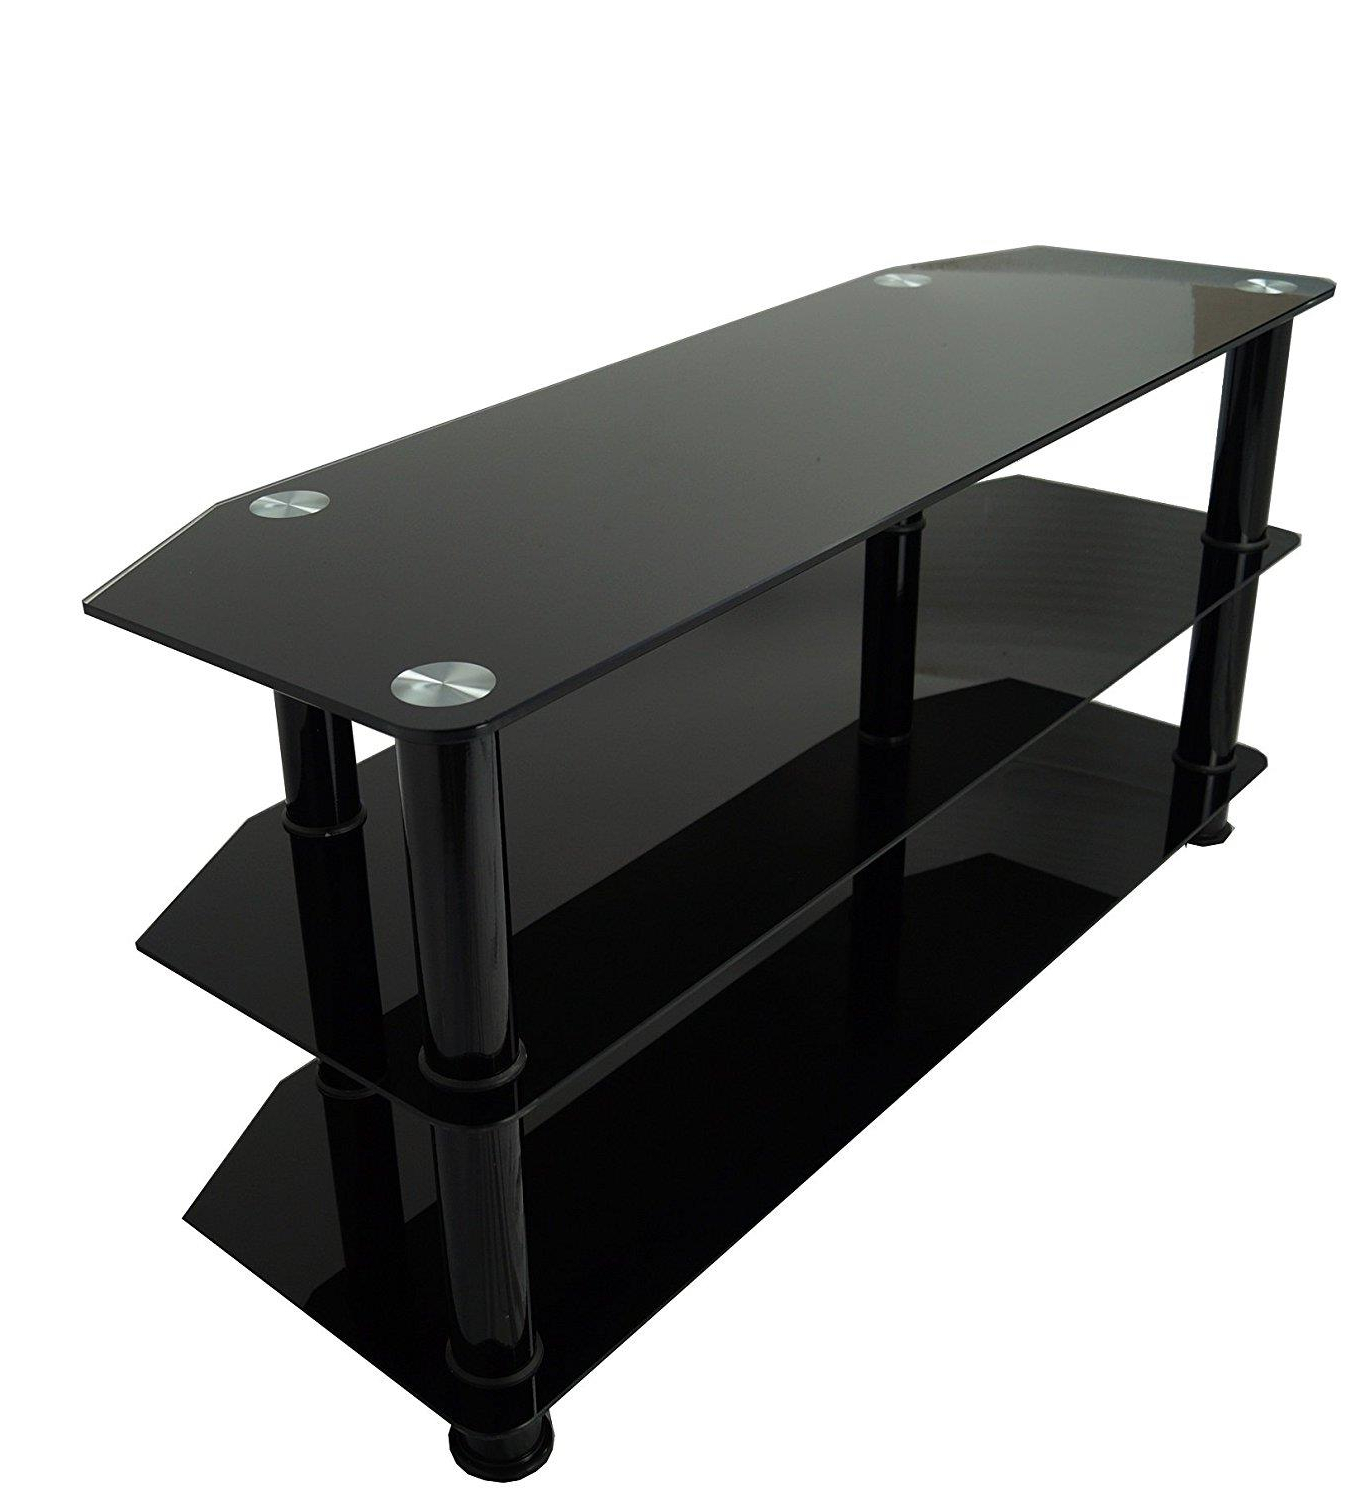 Most Popular Black Glass Tv Stand For 32 Inch Up To 60 Inch 3d Led Lcd & Plasma Intended For Black Glass Tv Stands (View 9 of 20)